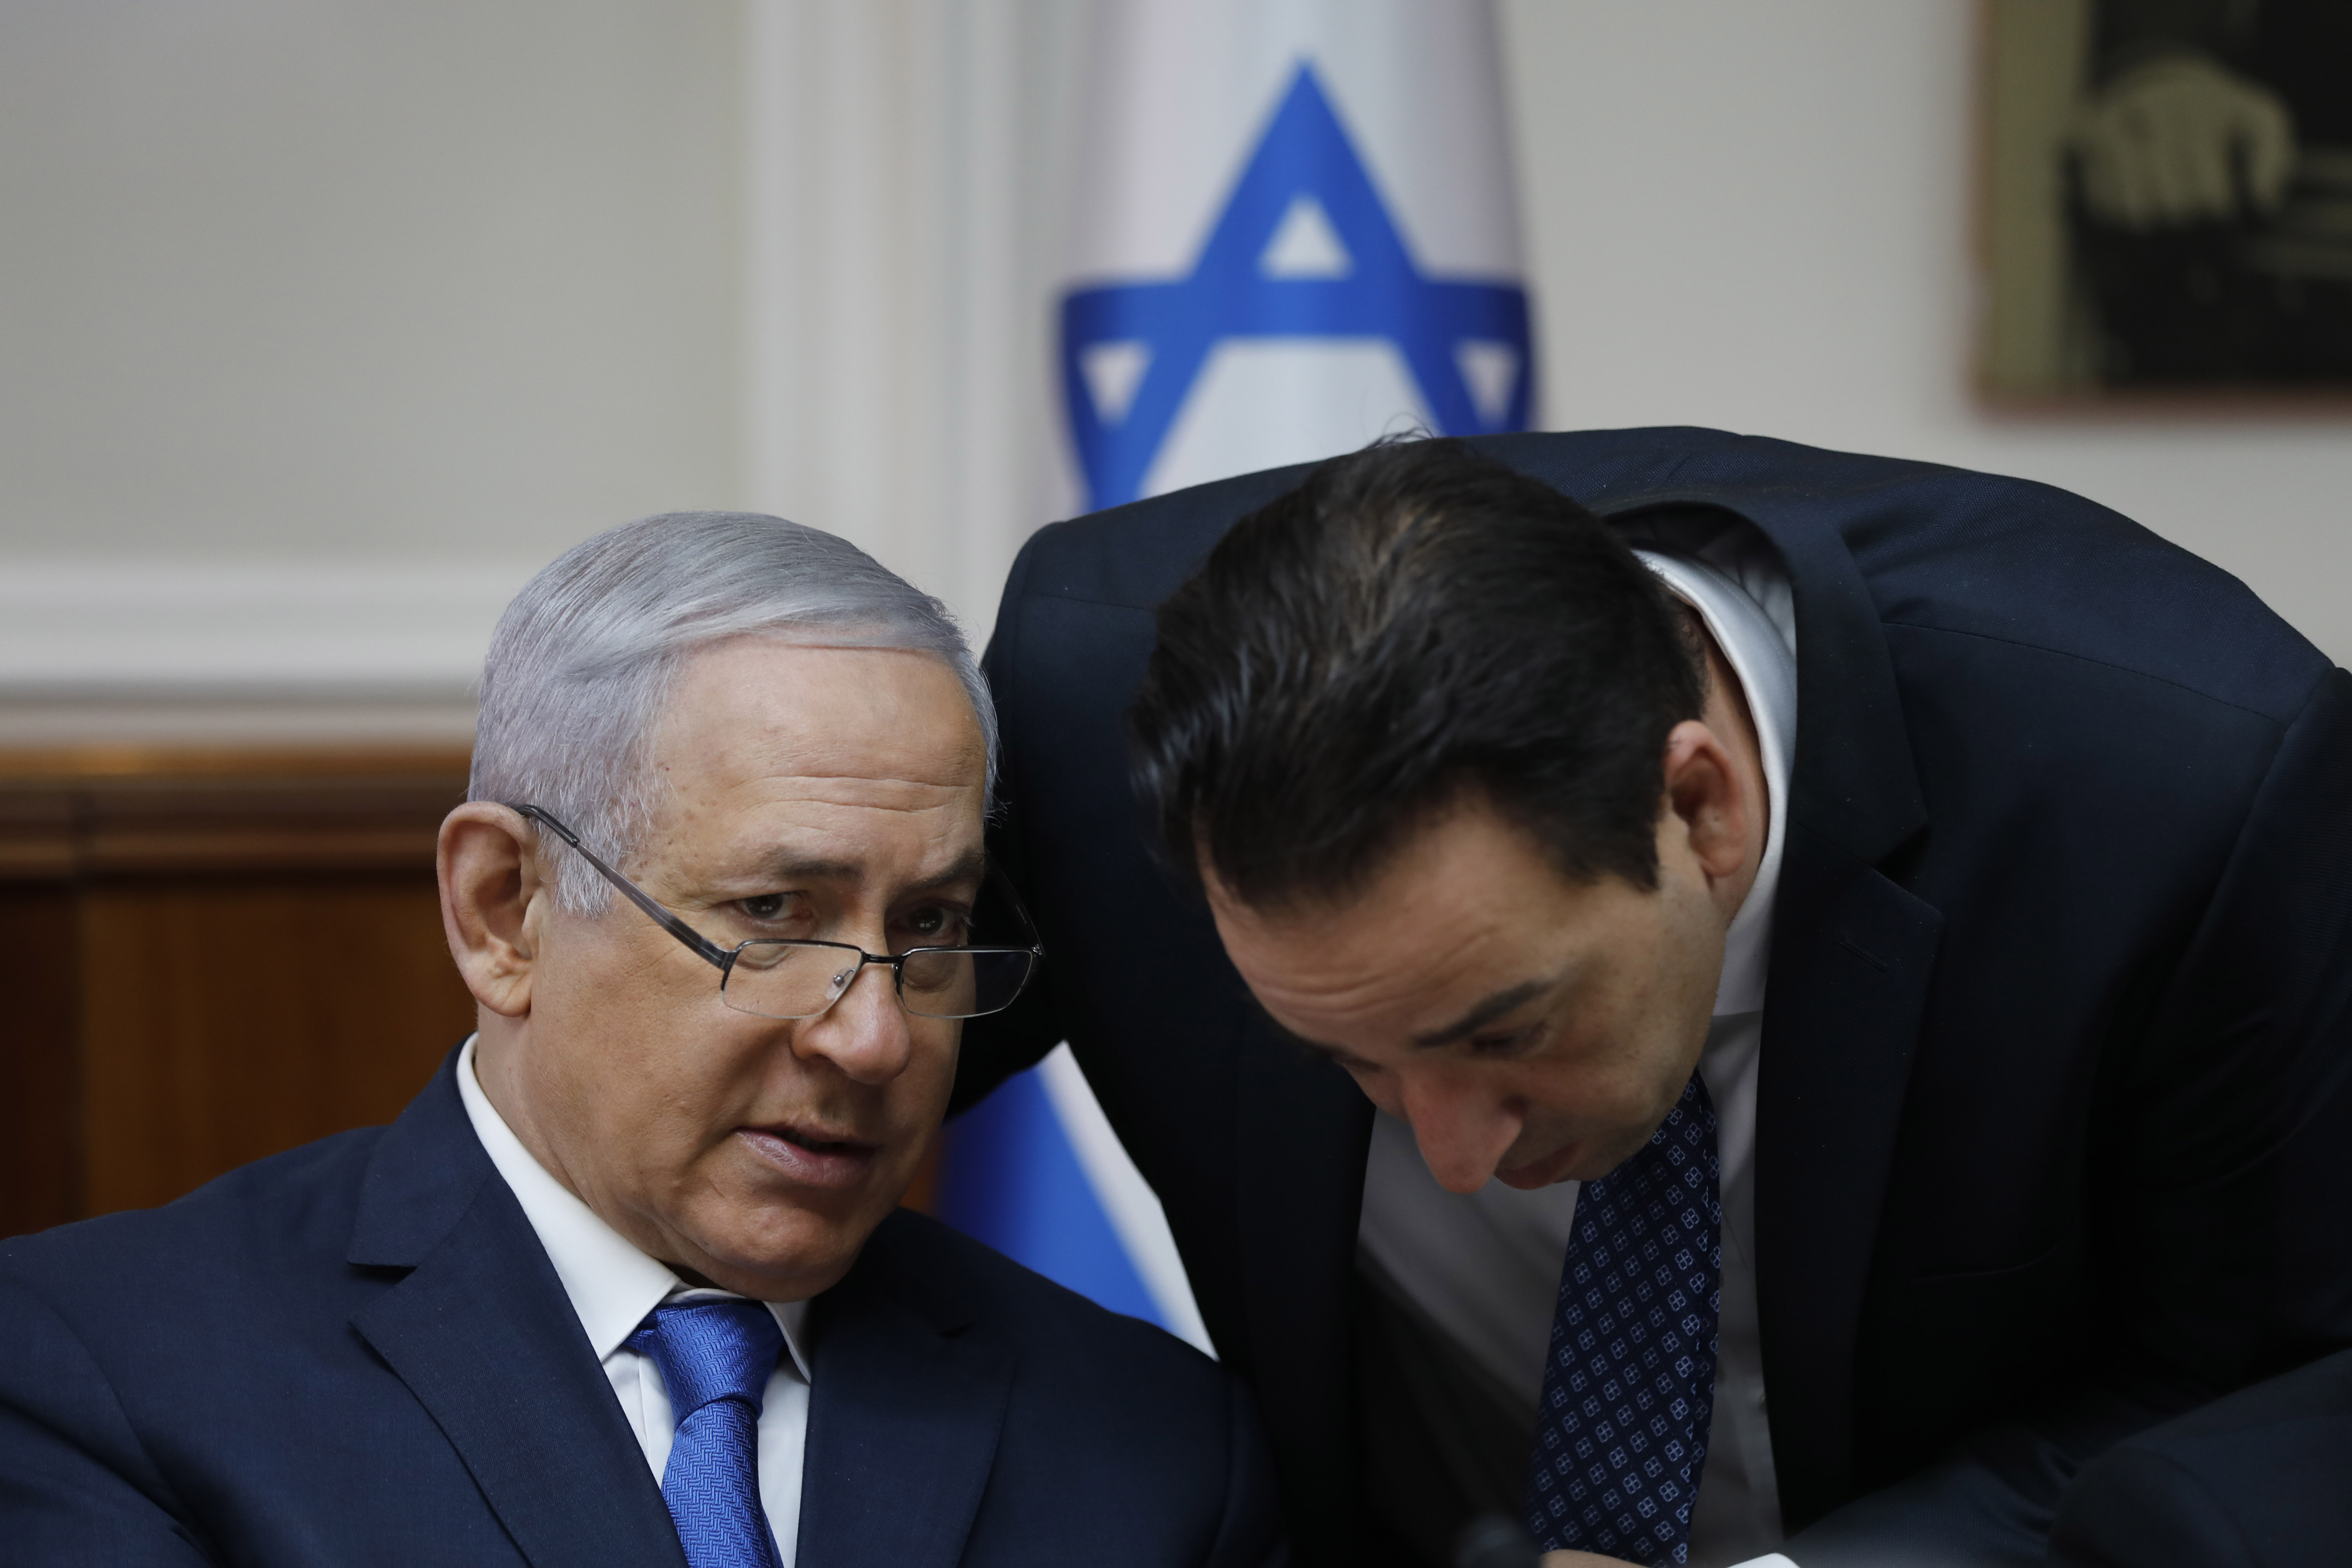 Israeli Prime Minister Benjamin Netanyahu (L) speaks with Ronen Peretz (R) during the weekly cabinet meeting at the Prime Minister's office in Jerusalem on December 16, 2018.